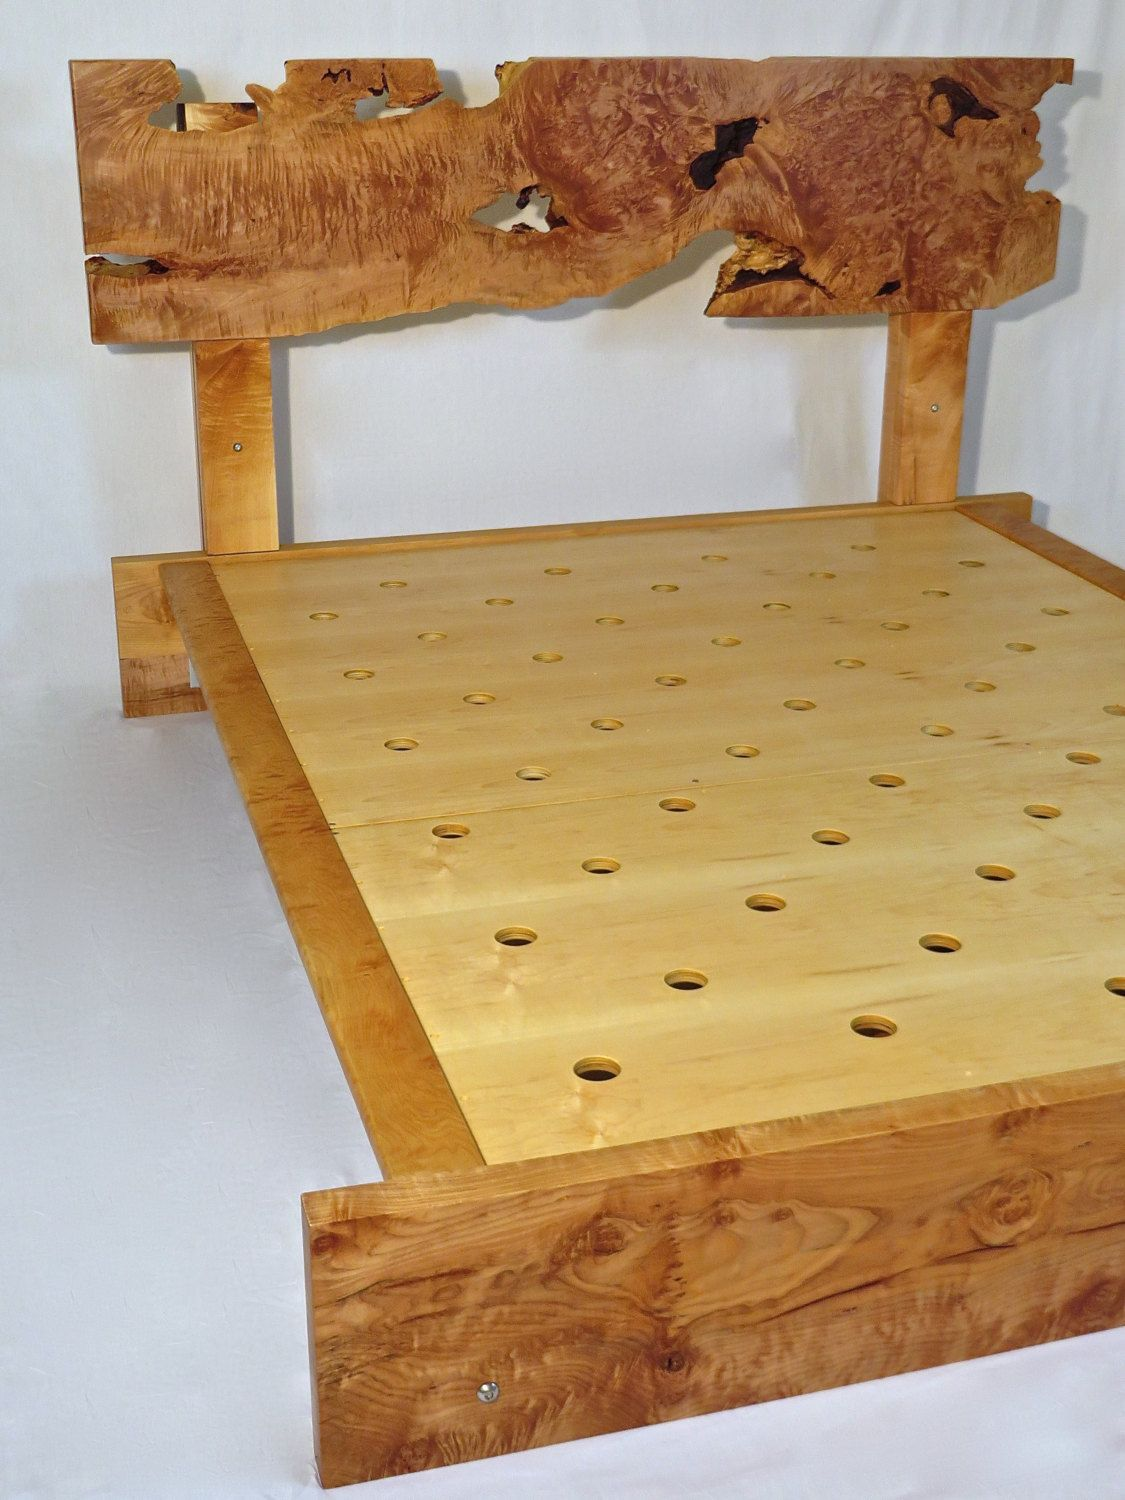 Solid Maple Bedroom Furniture Handcrafted Live Edge Curly Maple Queen Bed Frame With Matching